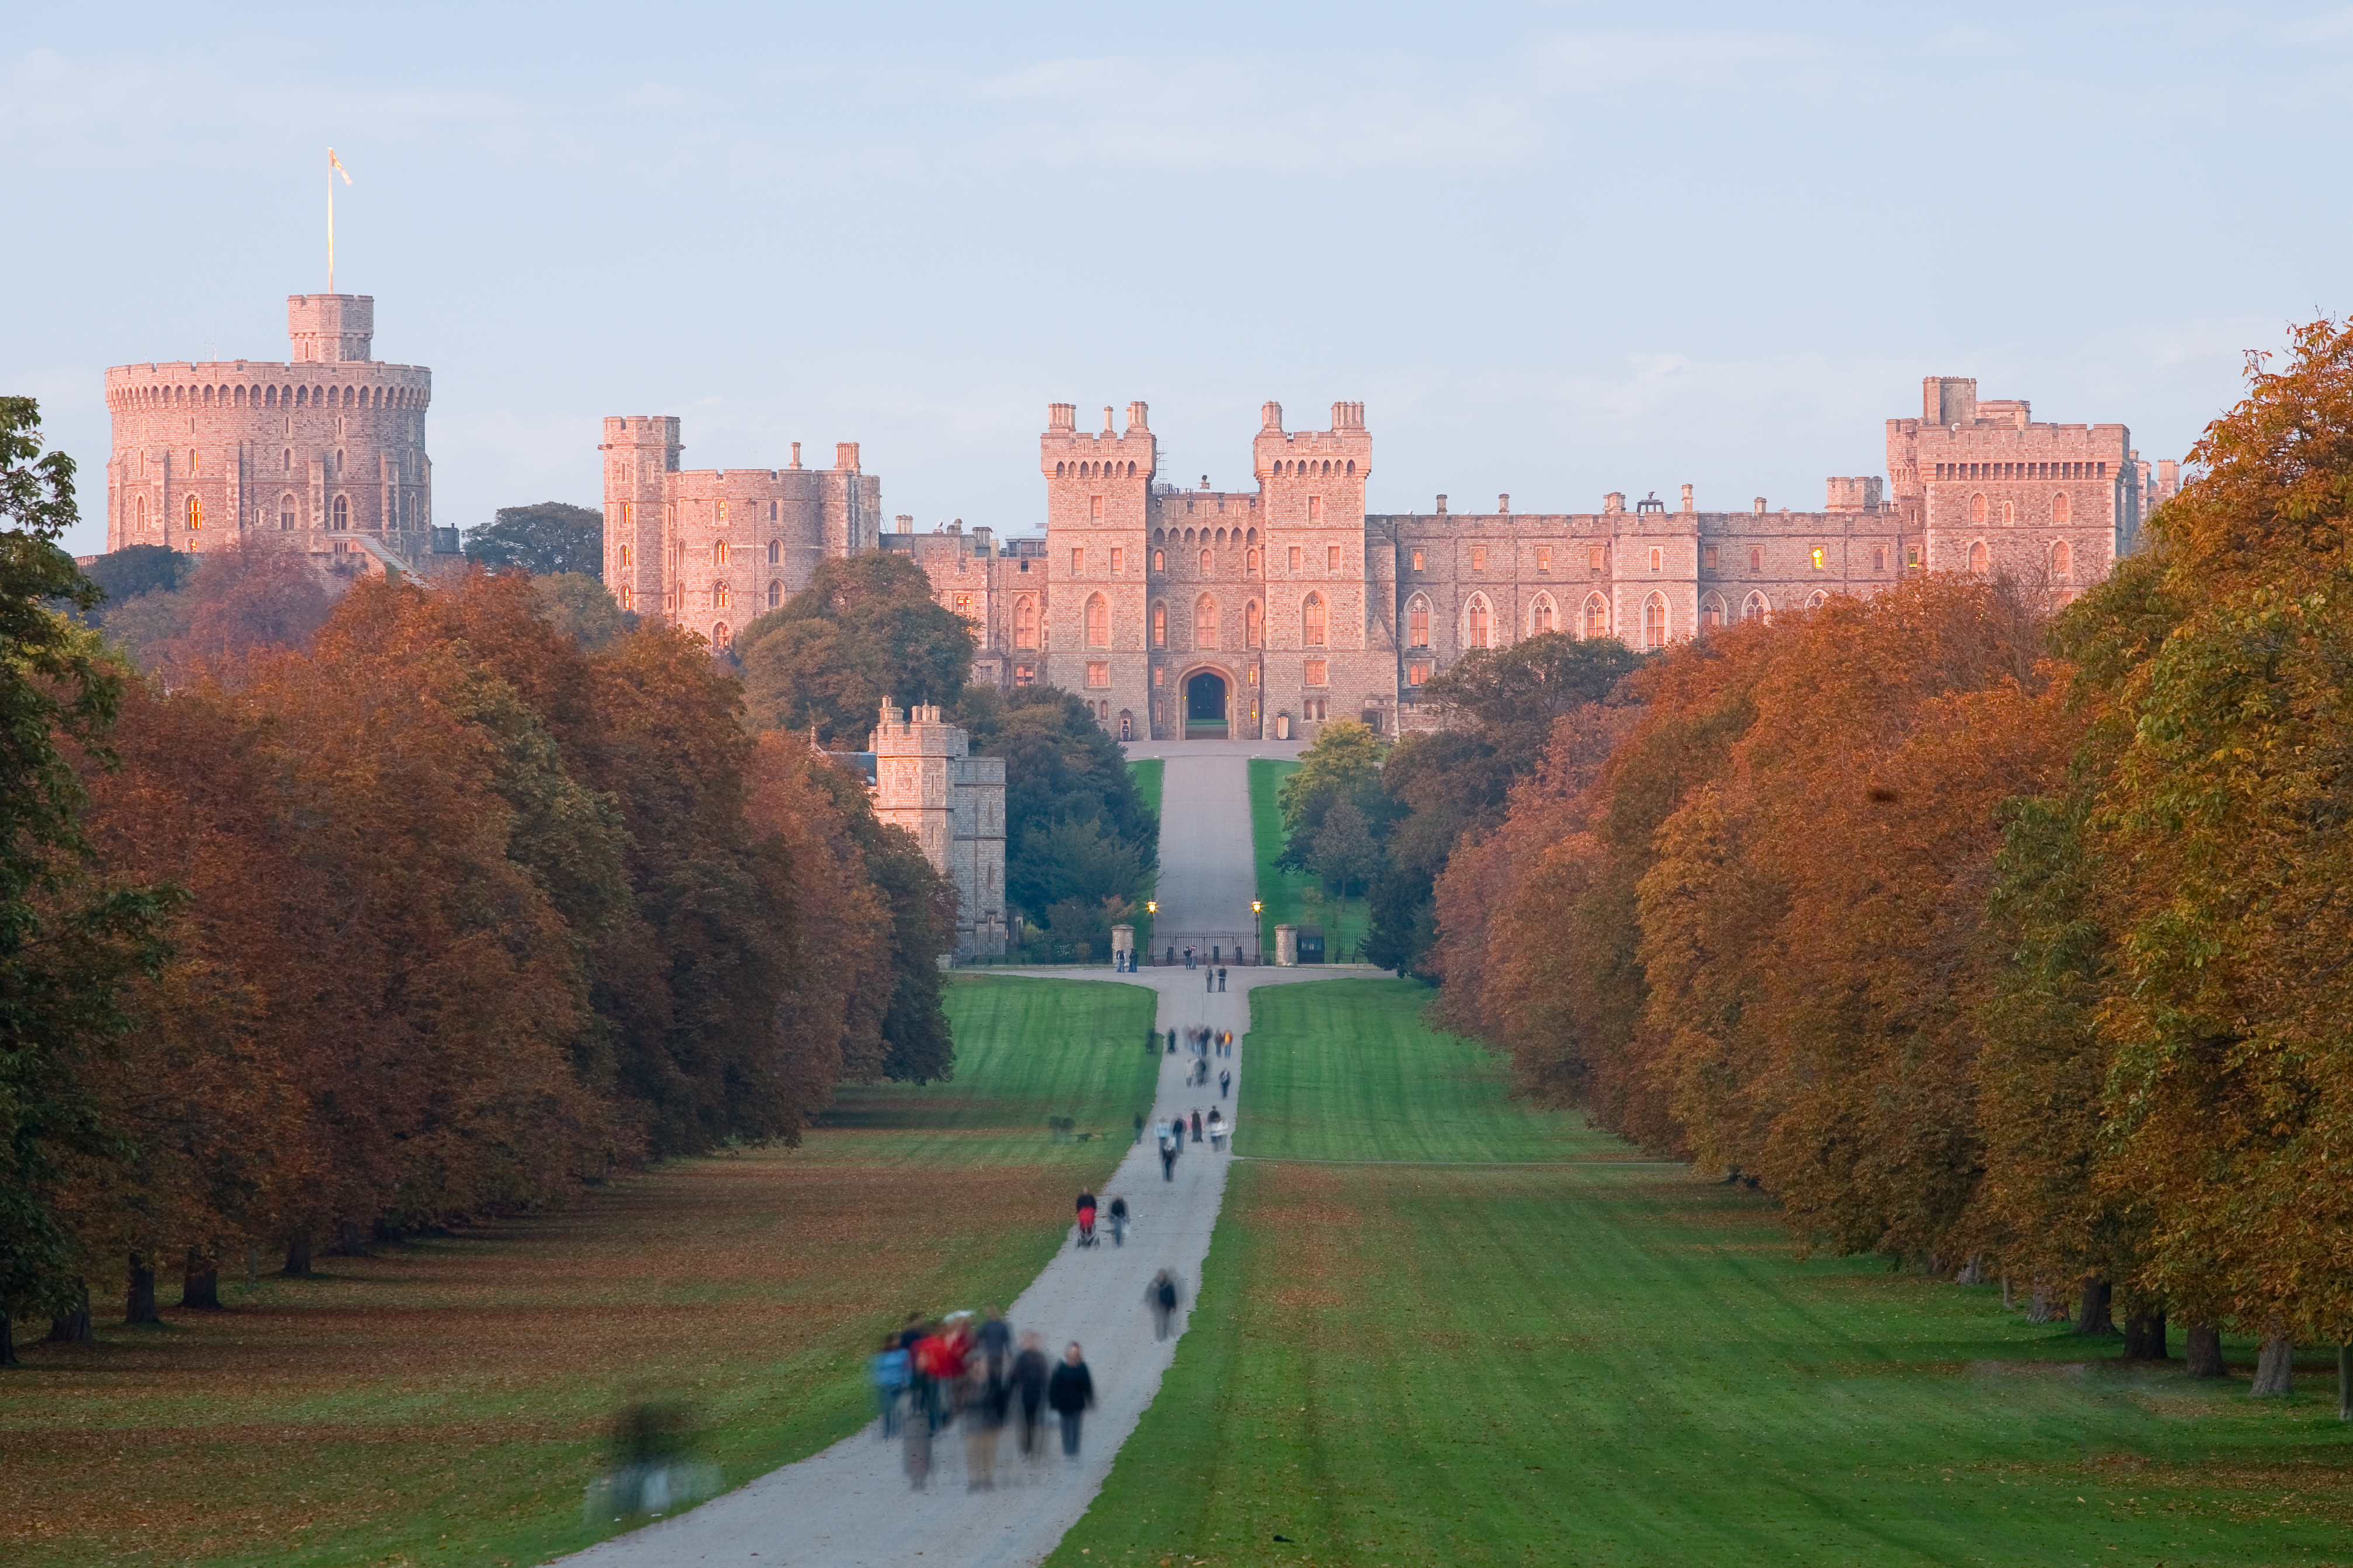 Windsor_Castle_at_Sunset_-_Nov_2006